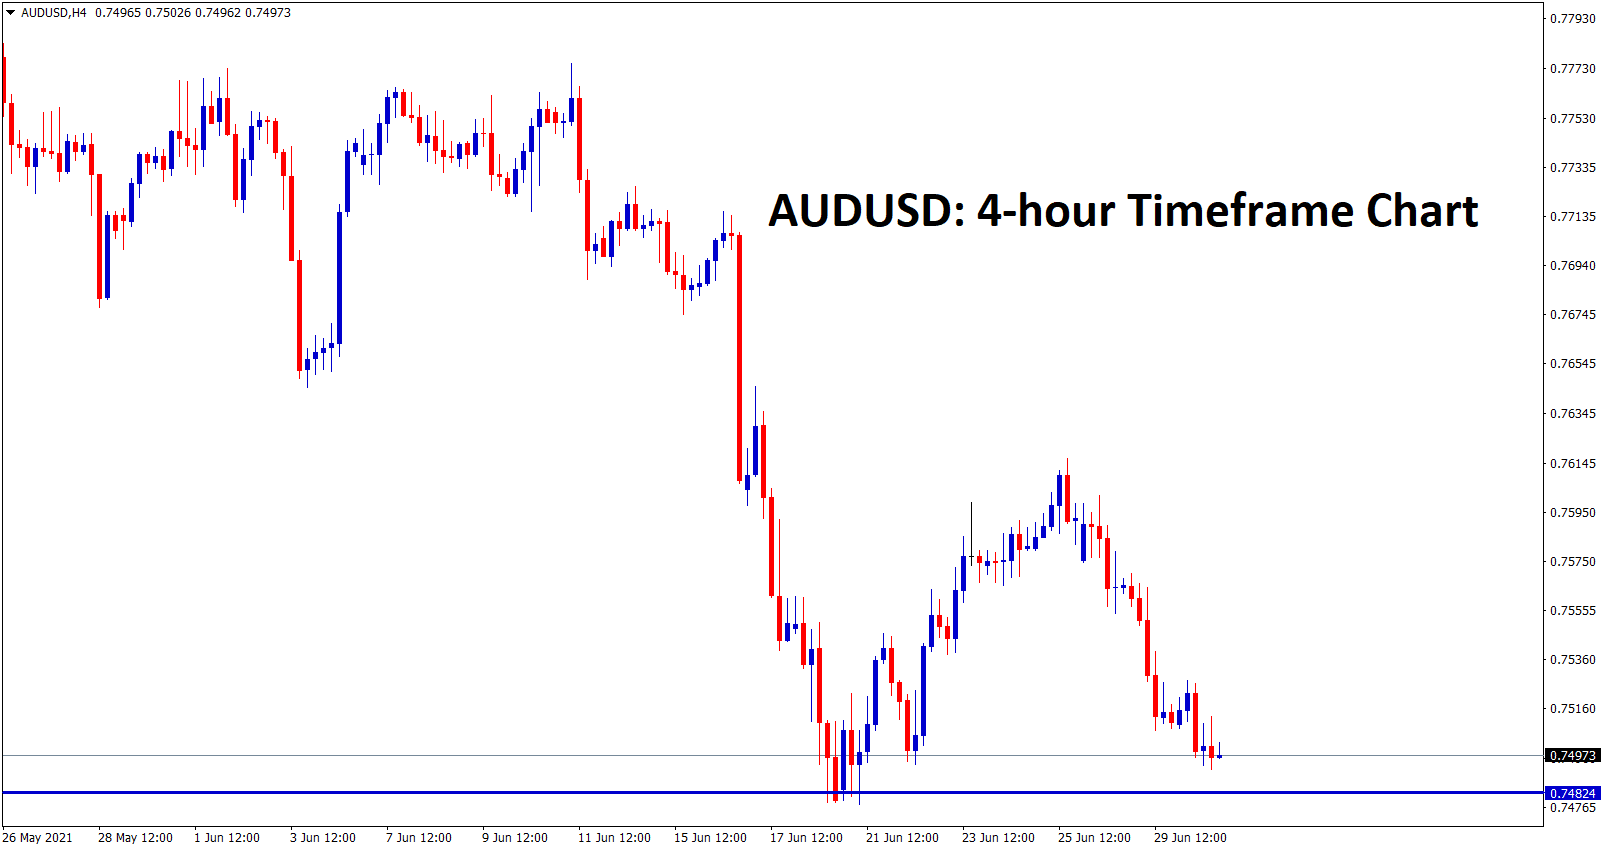 AUDUSD is near to the support zone